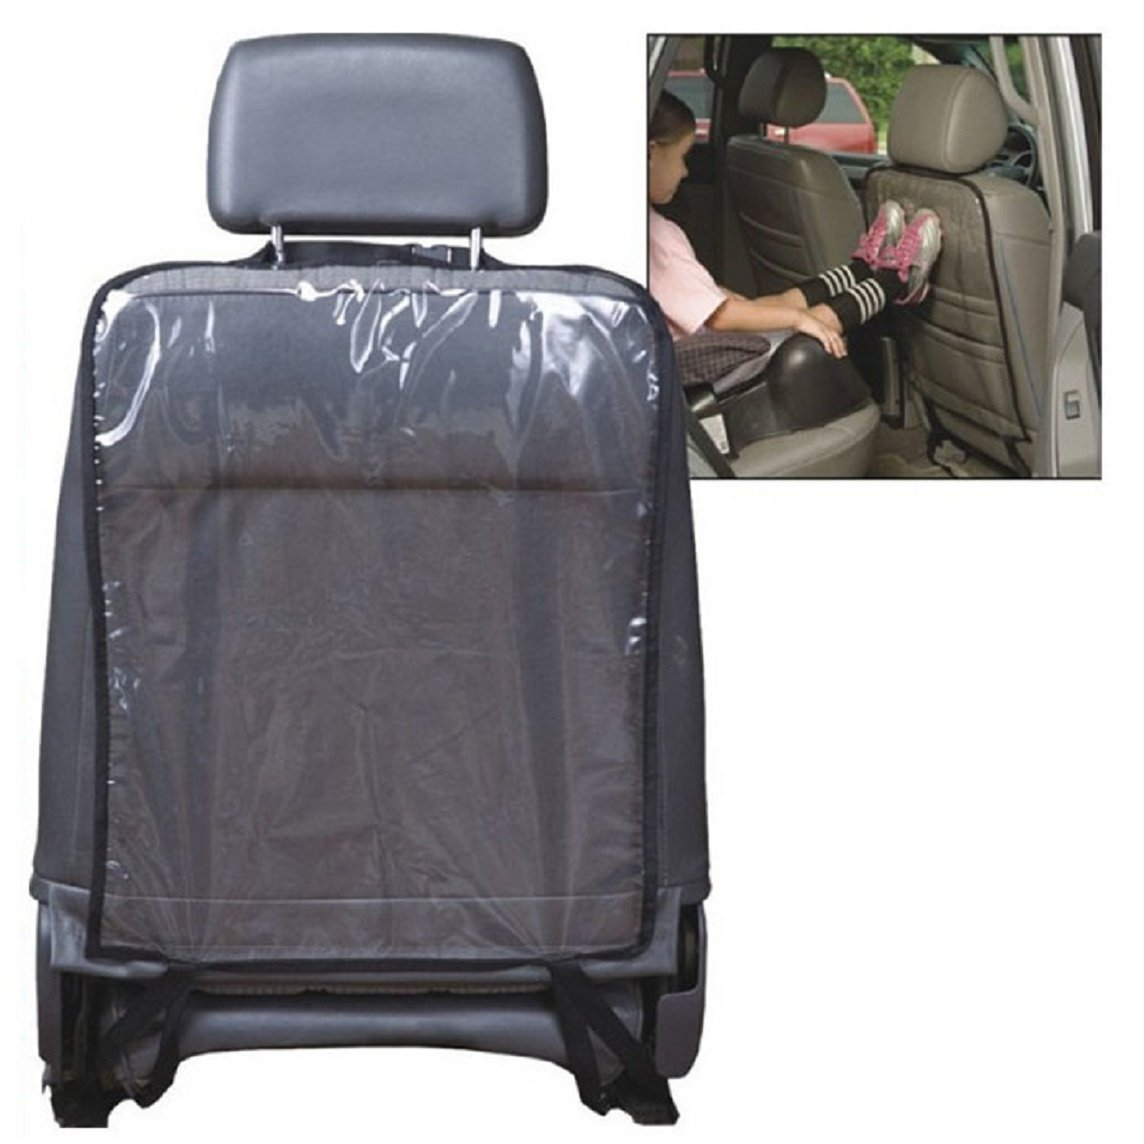 Bessky® Car Auto Seat Back Protector Cover For Children Kick Mat Mud Clean (Black)